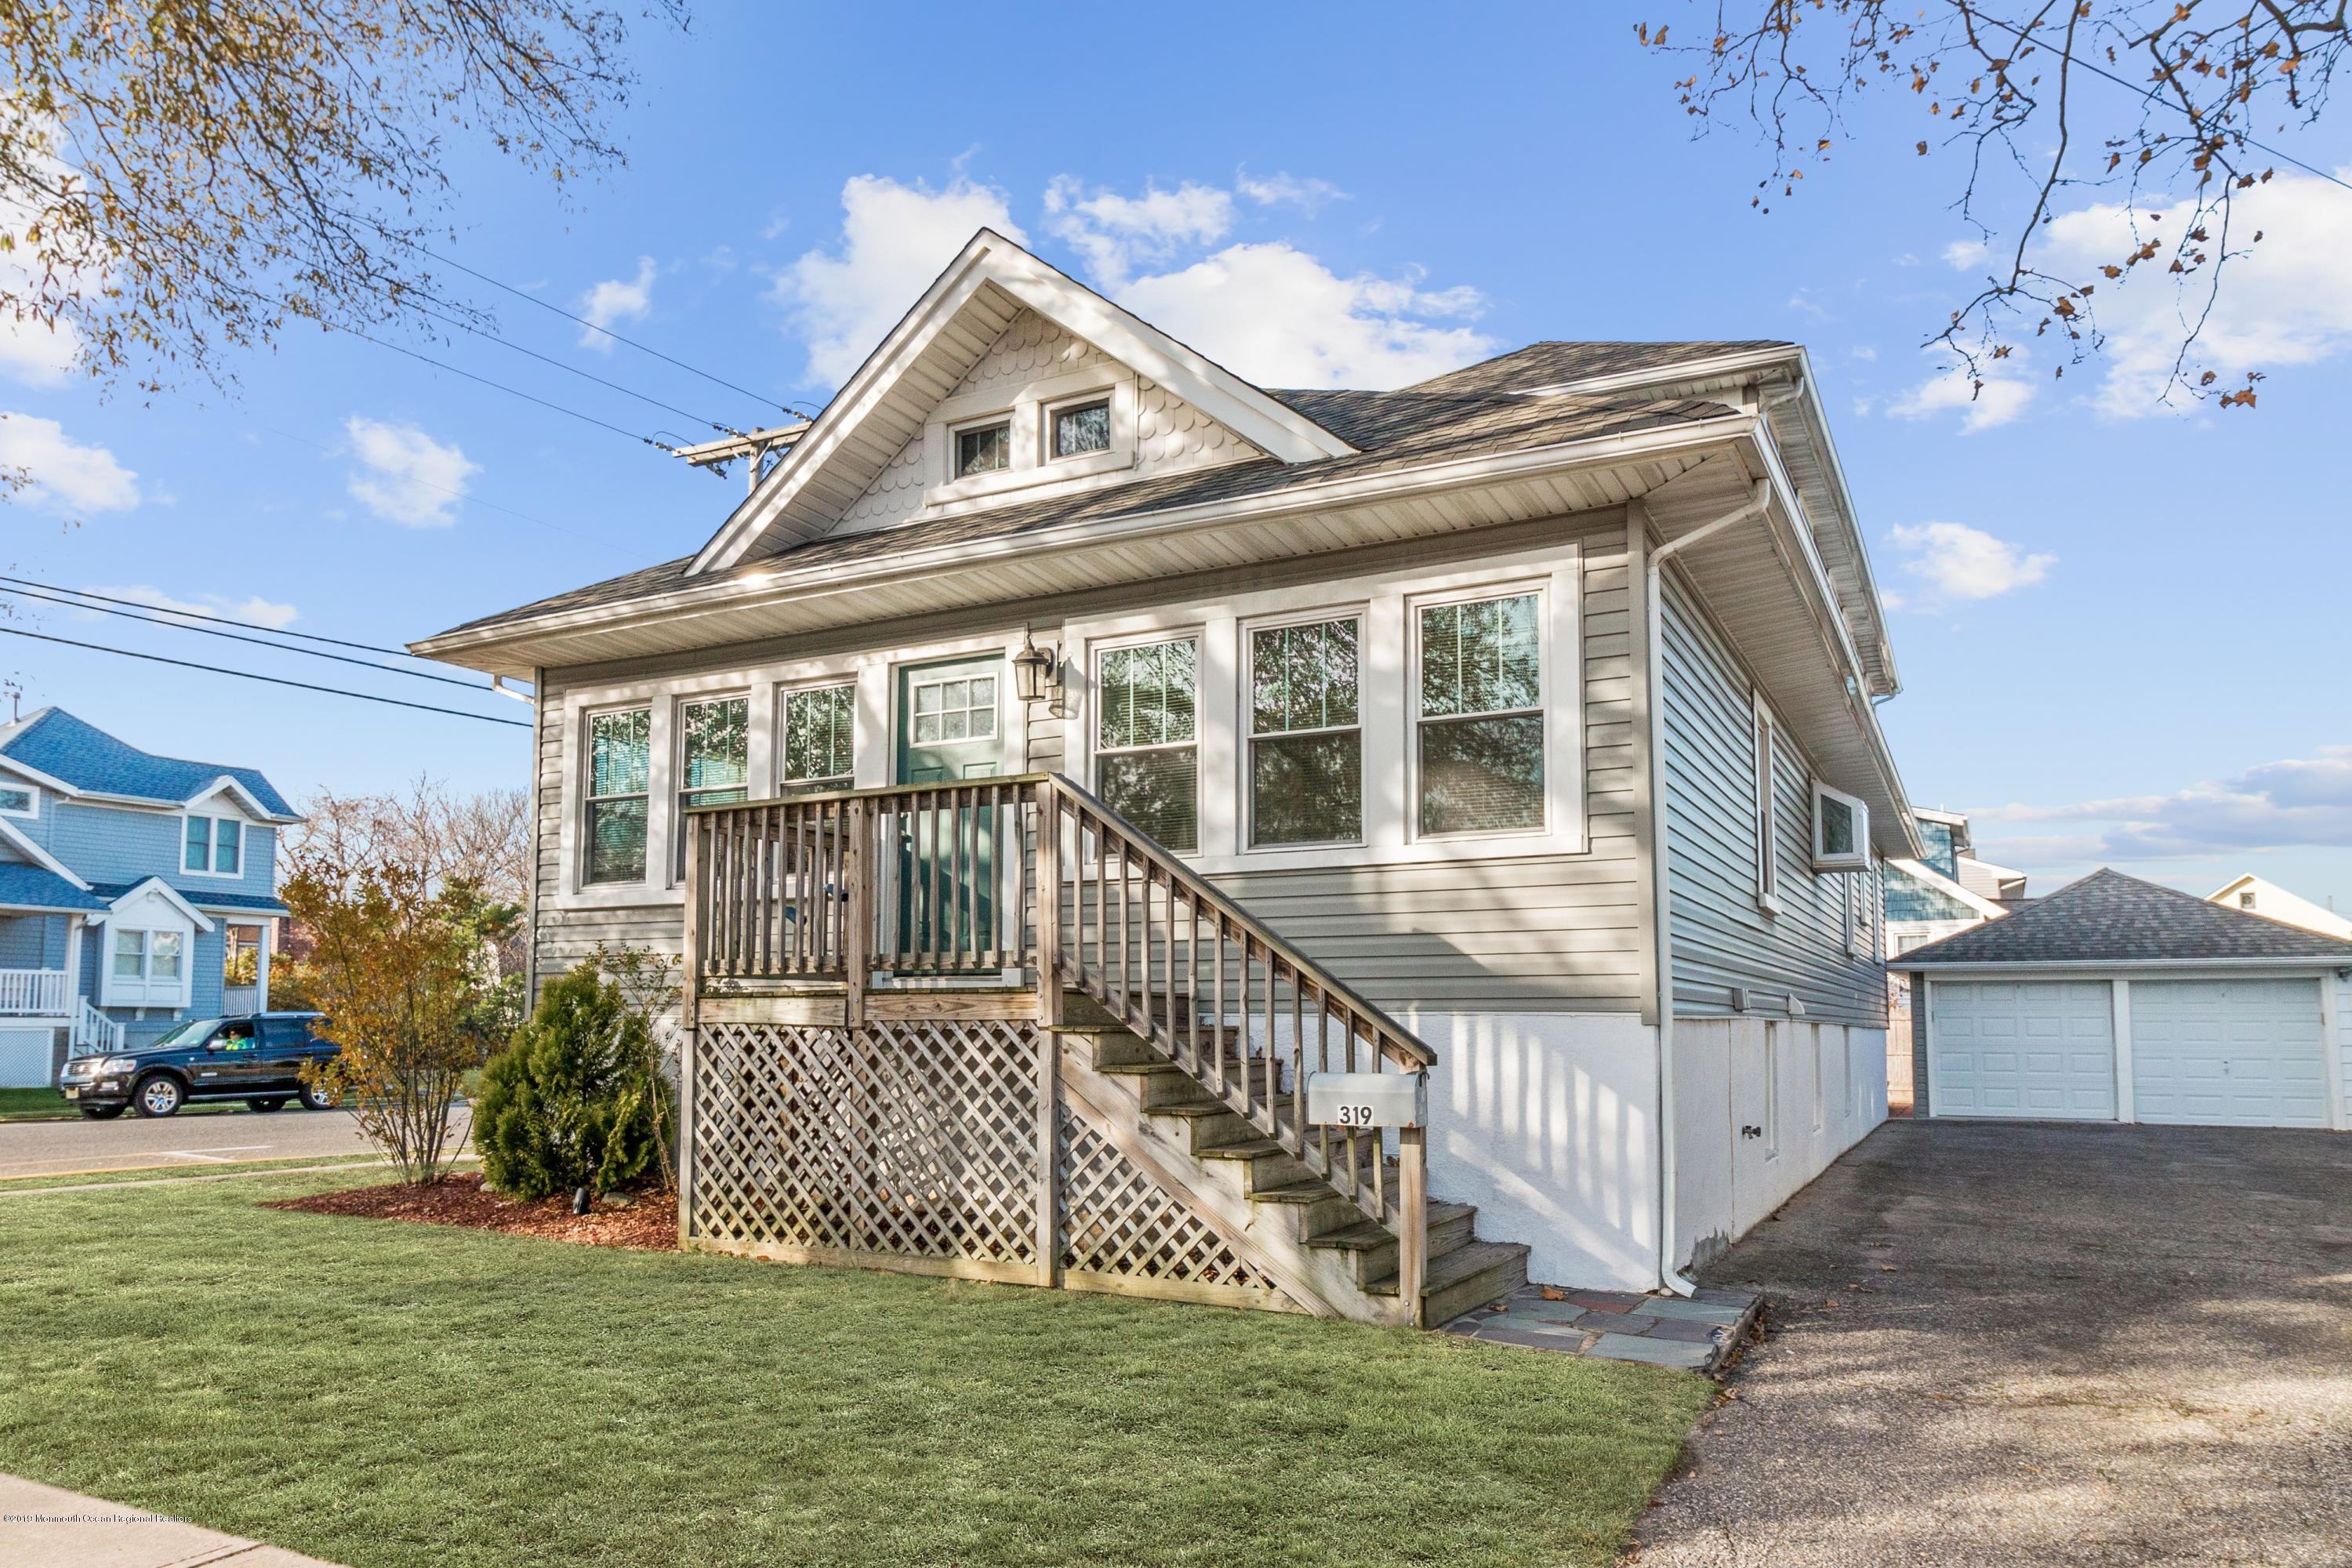 Photo of 319 Arnold Avenue, Point Pleasant Beach, NJ 08742